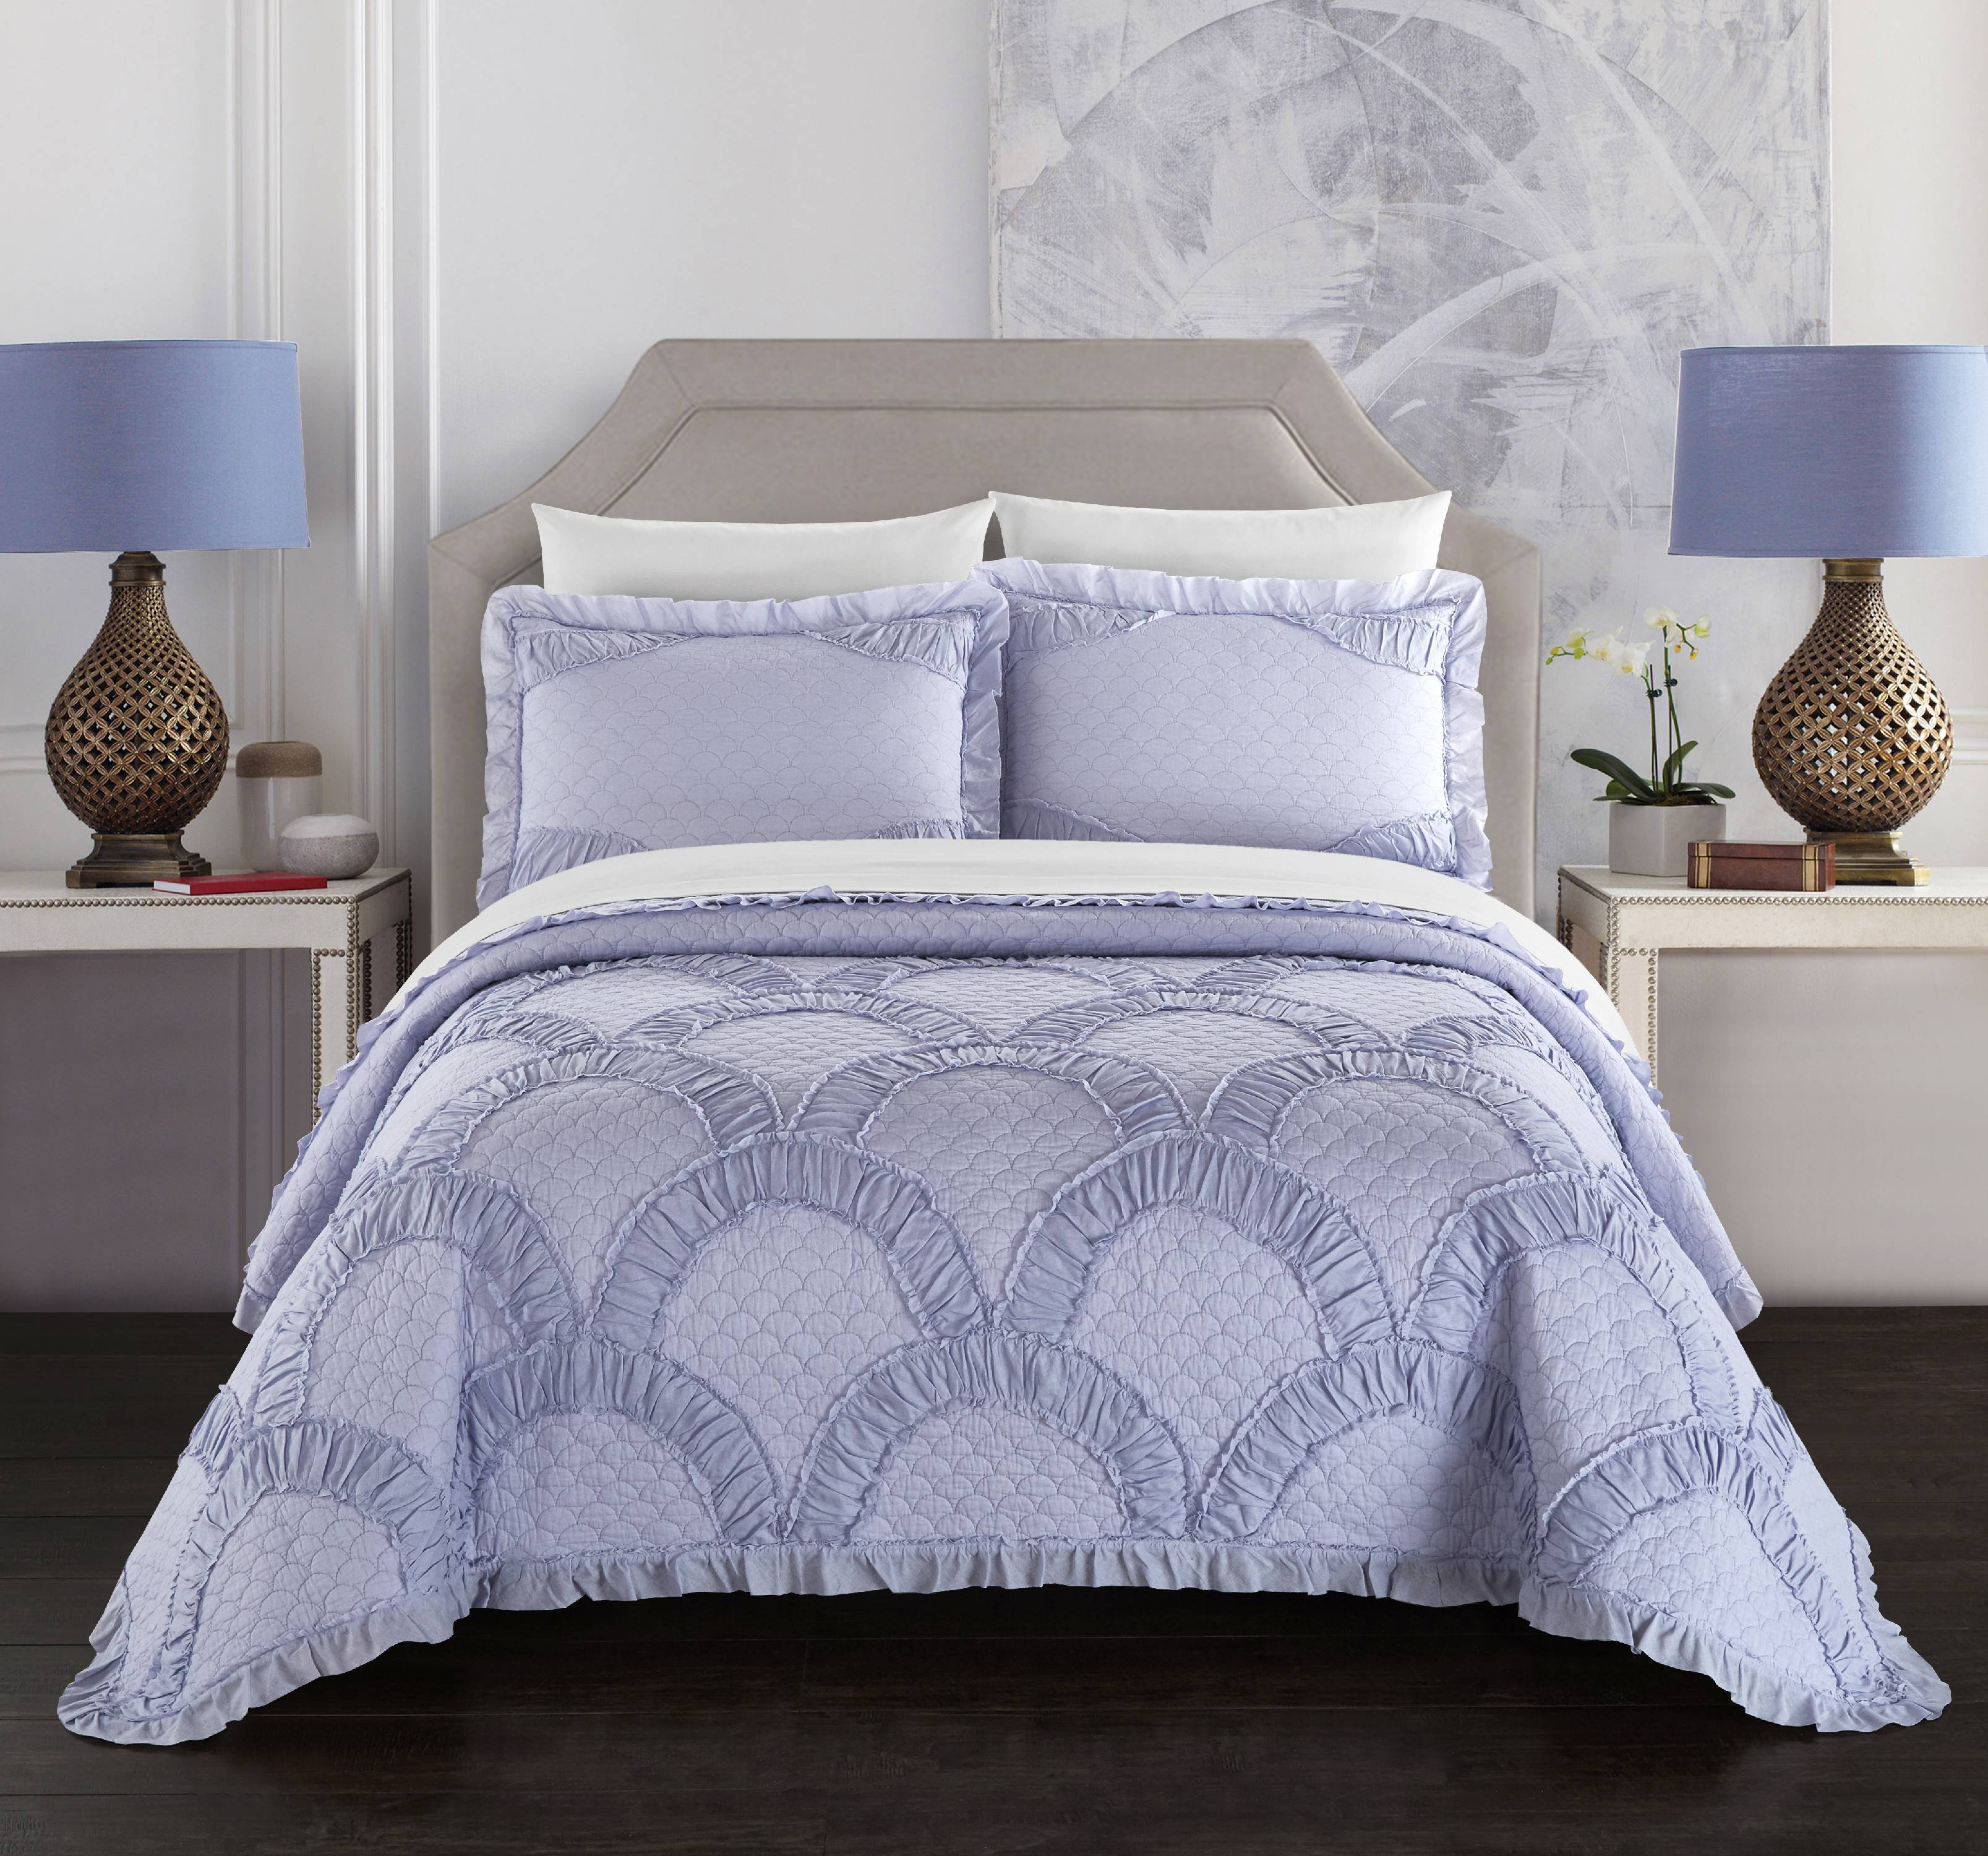 Chic Home Lesley 1 Piece Quilt Coverlet 100% Cotton Fish Scale Pattern Stitching